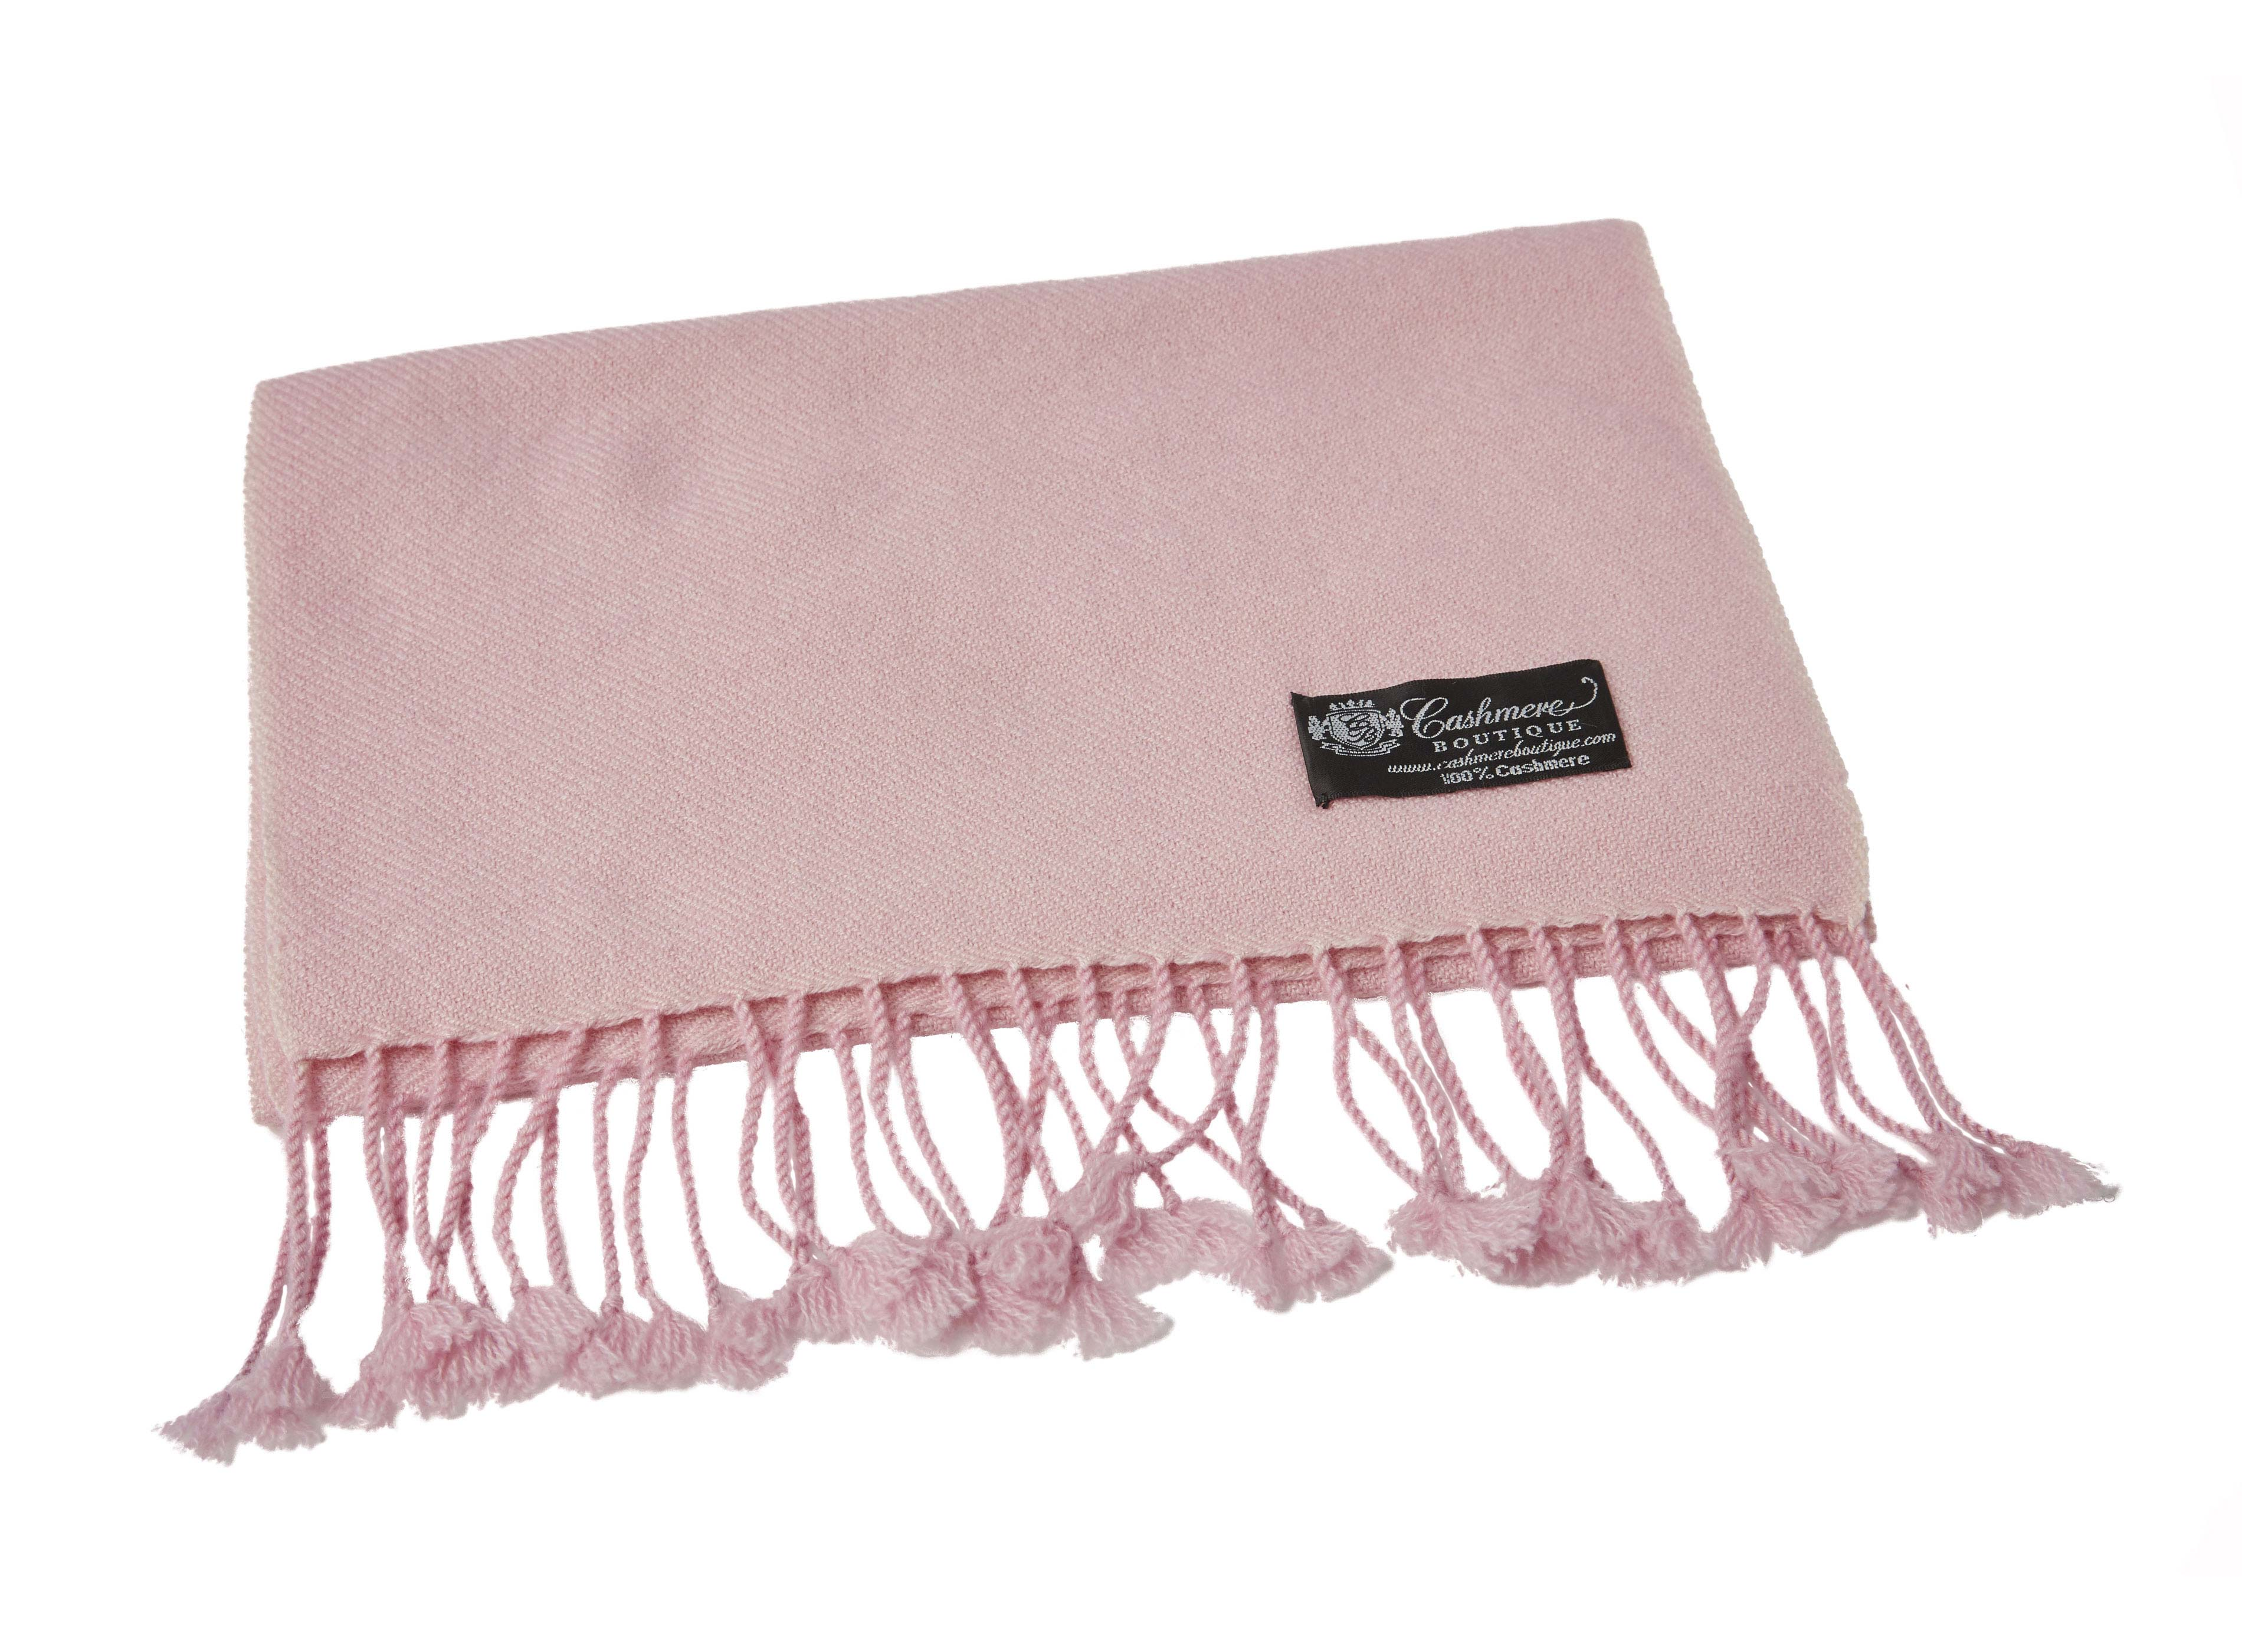 Pure_Cashmere_Scarf_with_Tassels_Rose_Petal_Pink